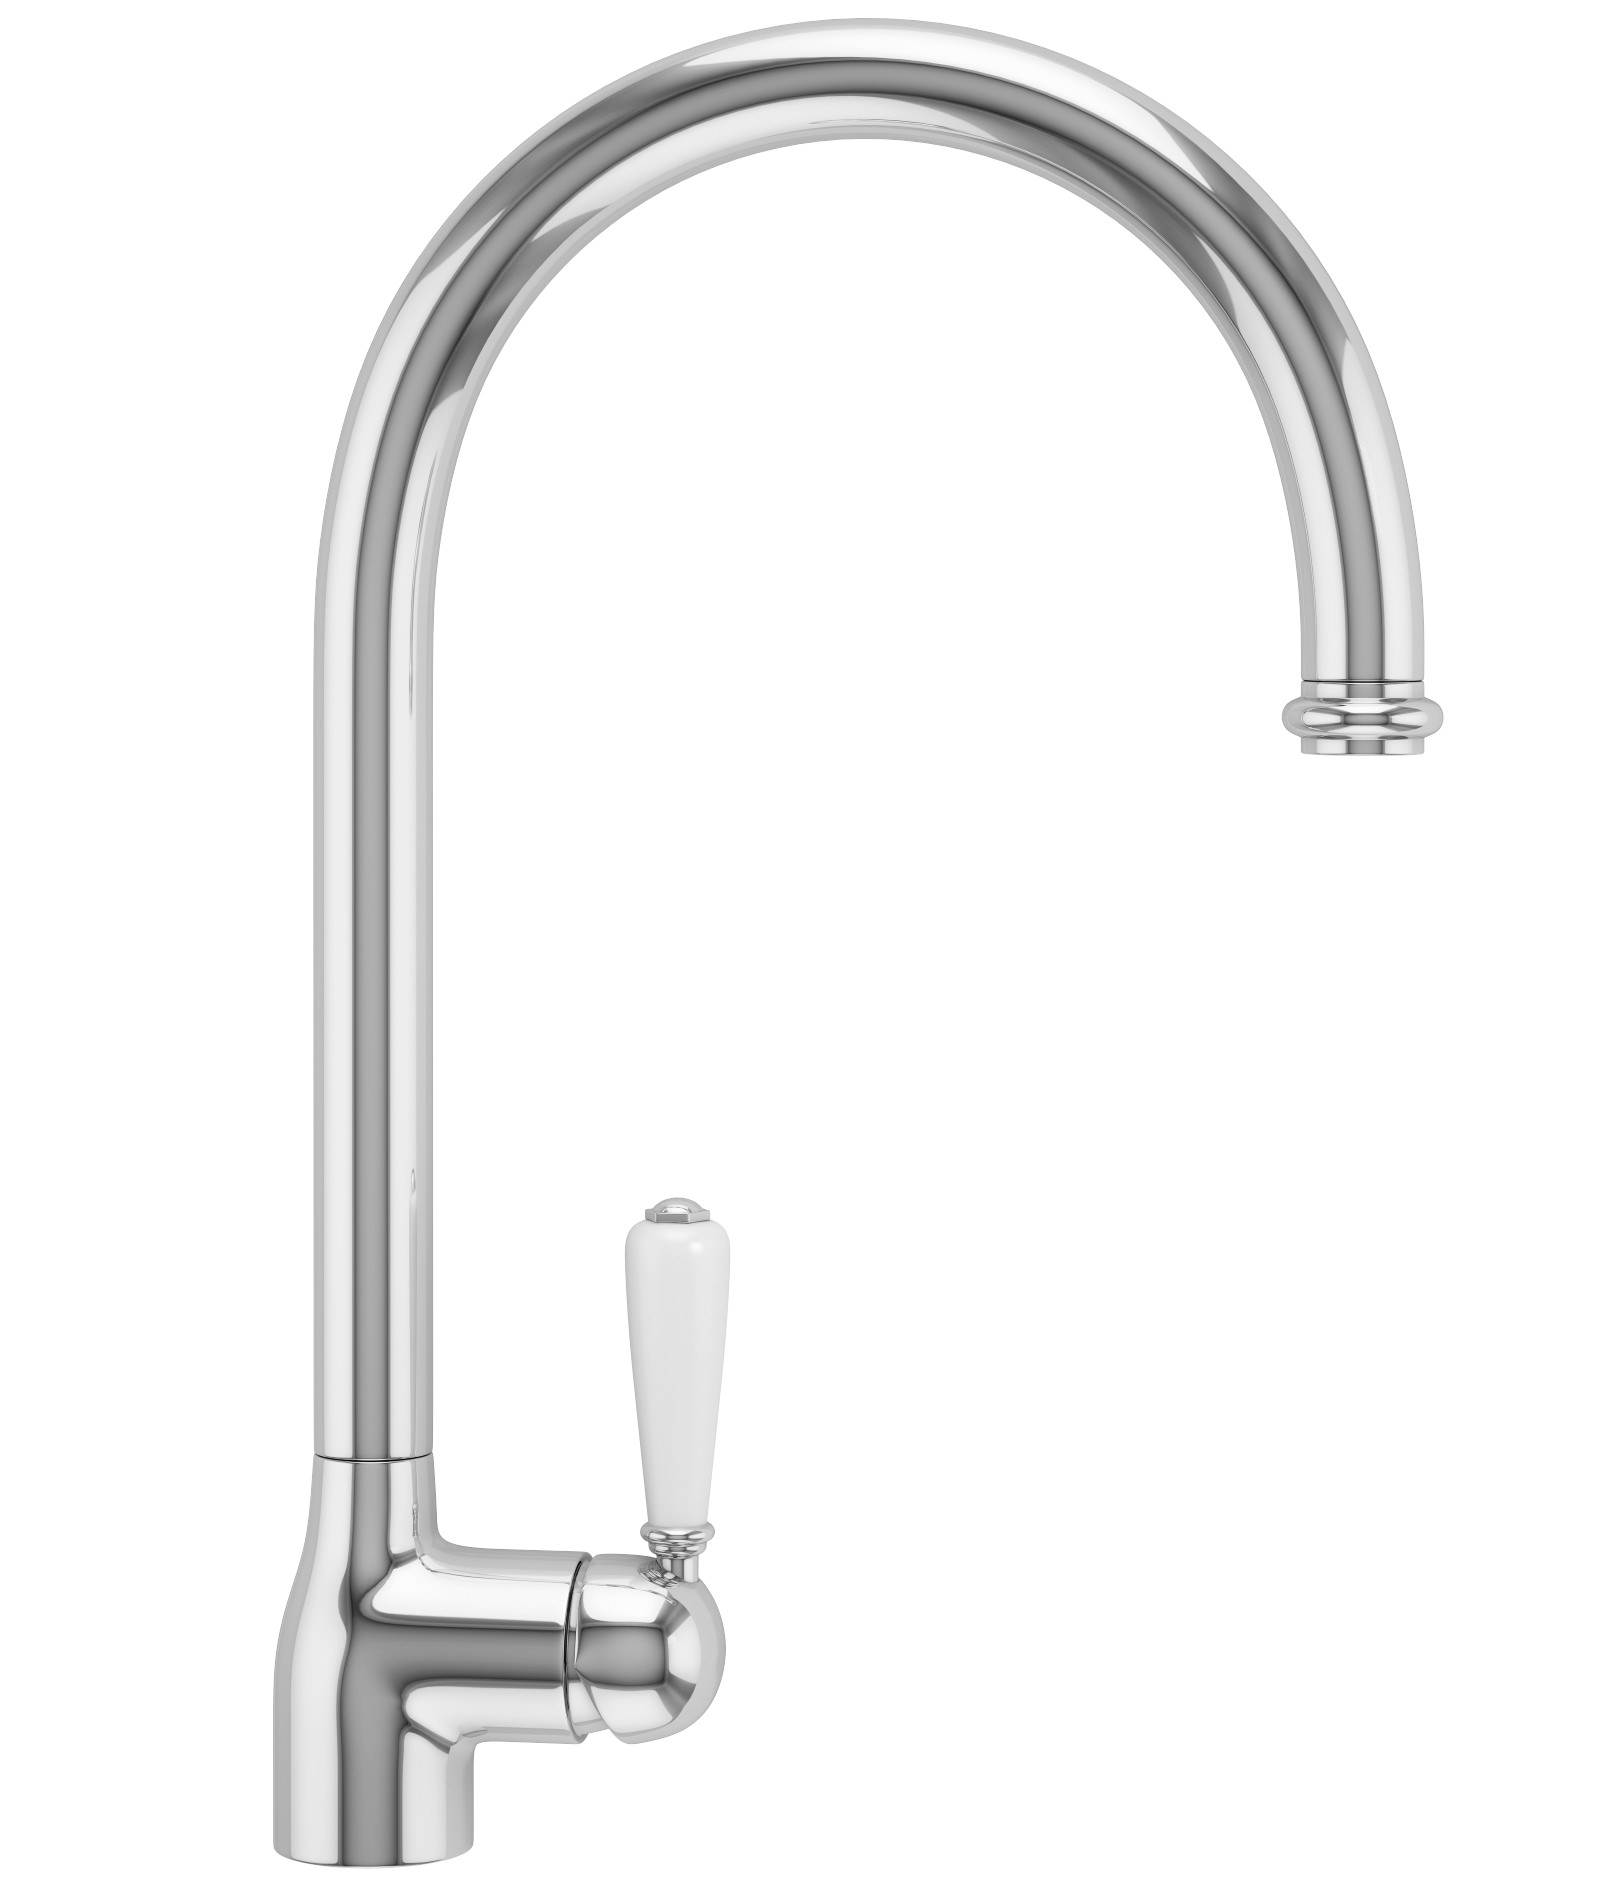 White Kitchen Mixer Tap belfast pull-out nozzle chrome kitchen sink mixer tap